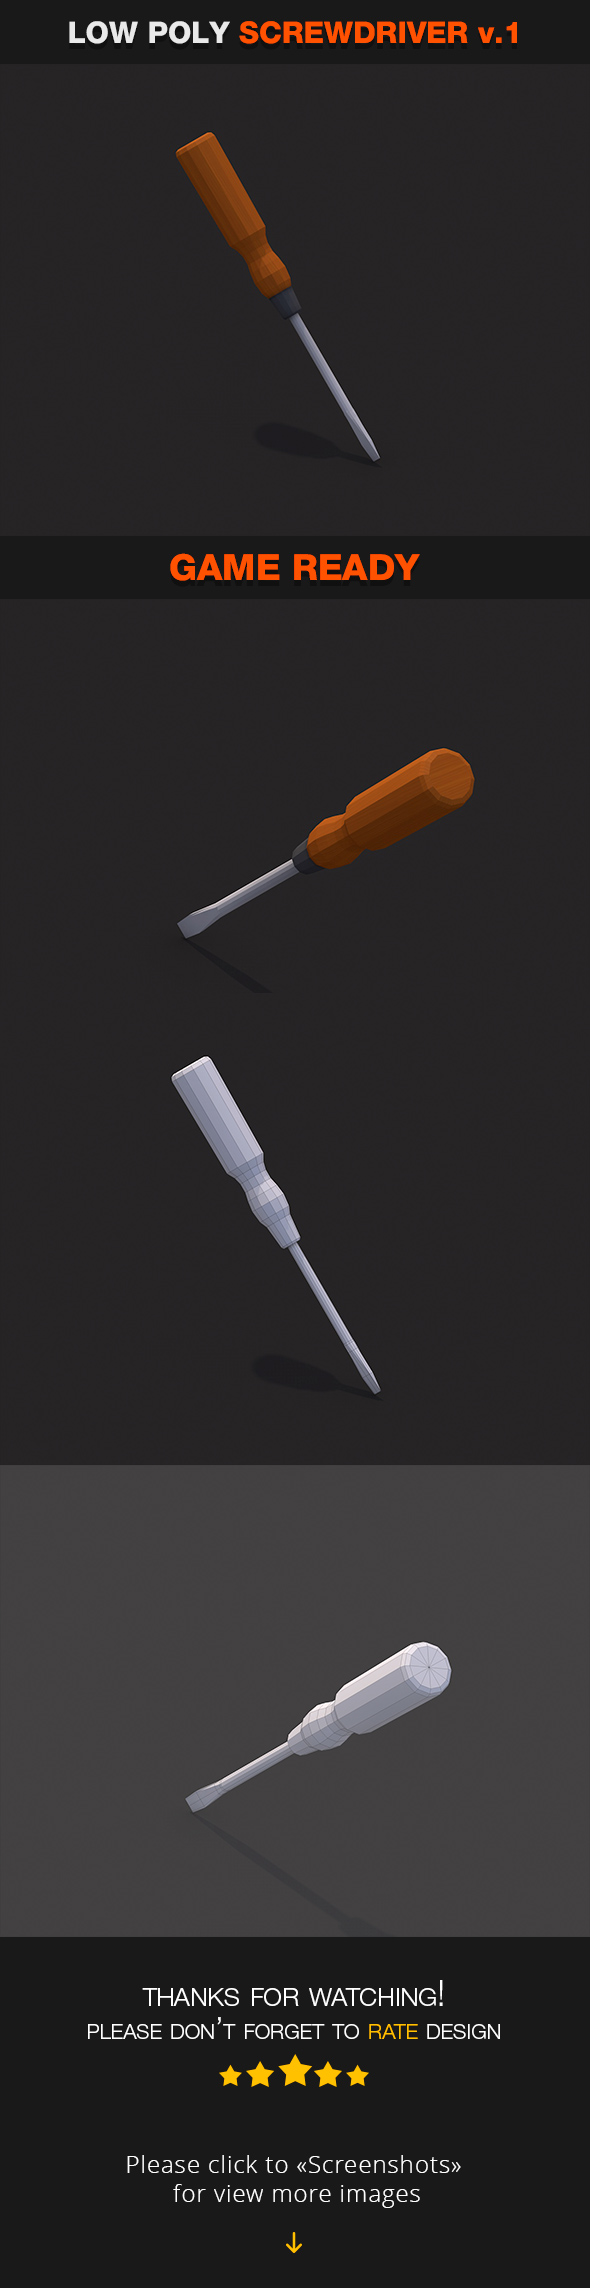 Low Poly Screwdriver v.1 - 3DOcean Item for Sale